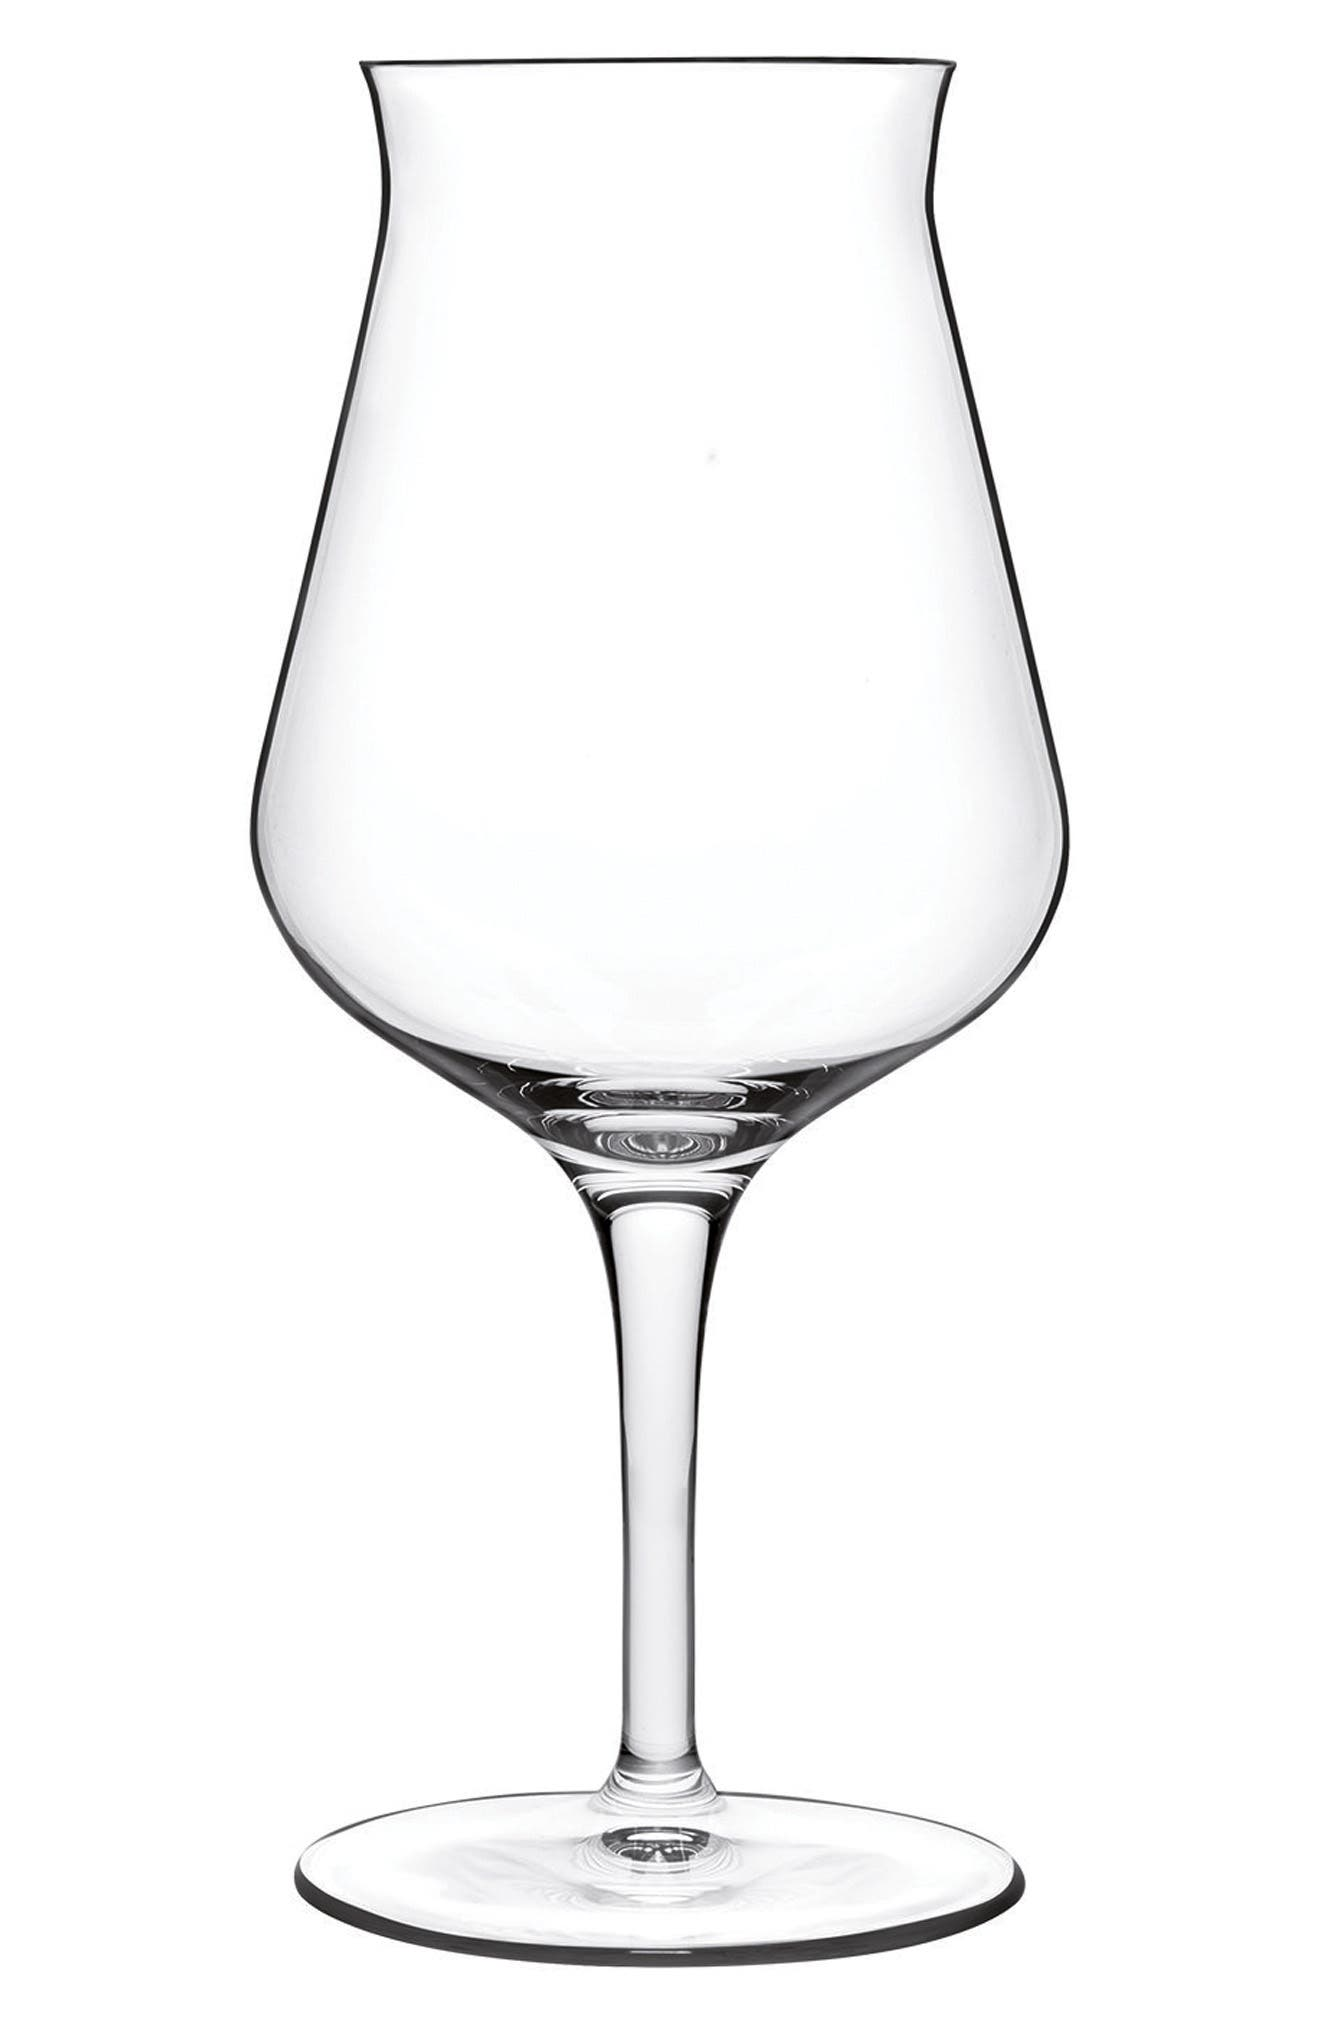 Alternate Image 1 Selected - Luigi Bormioli Birrateque Beer Tester Glass